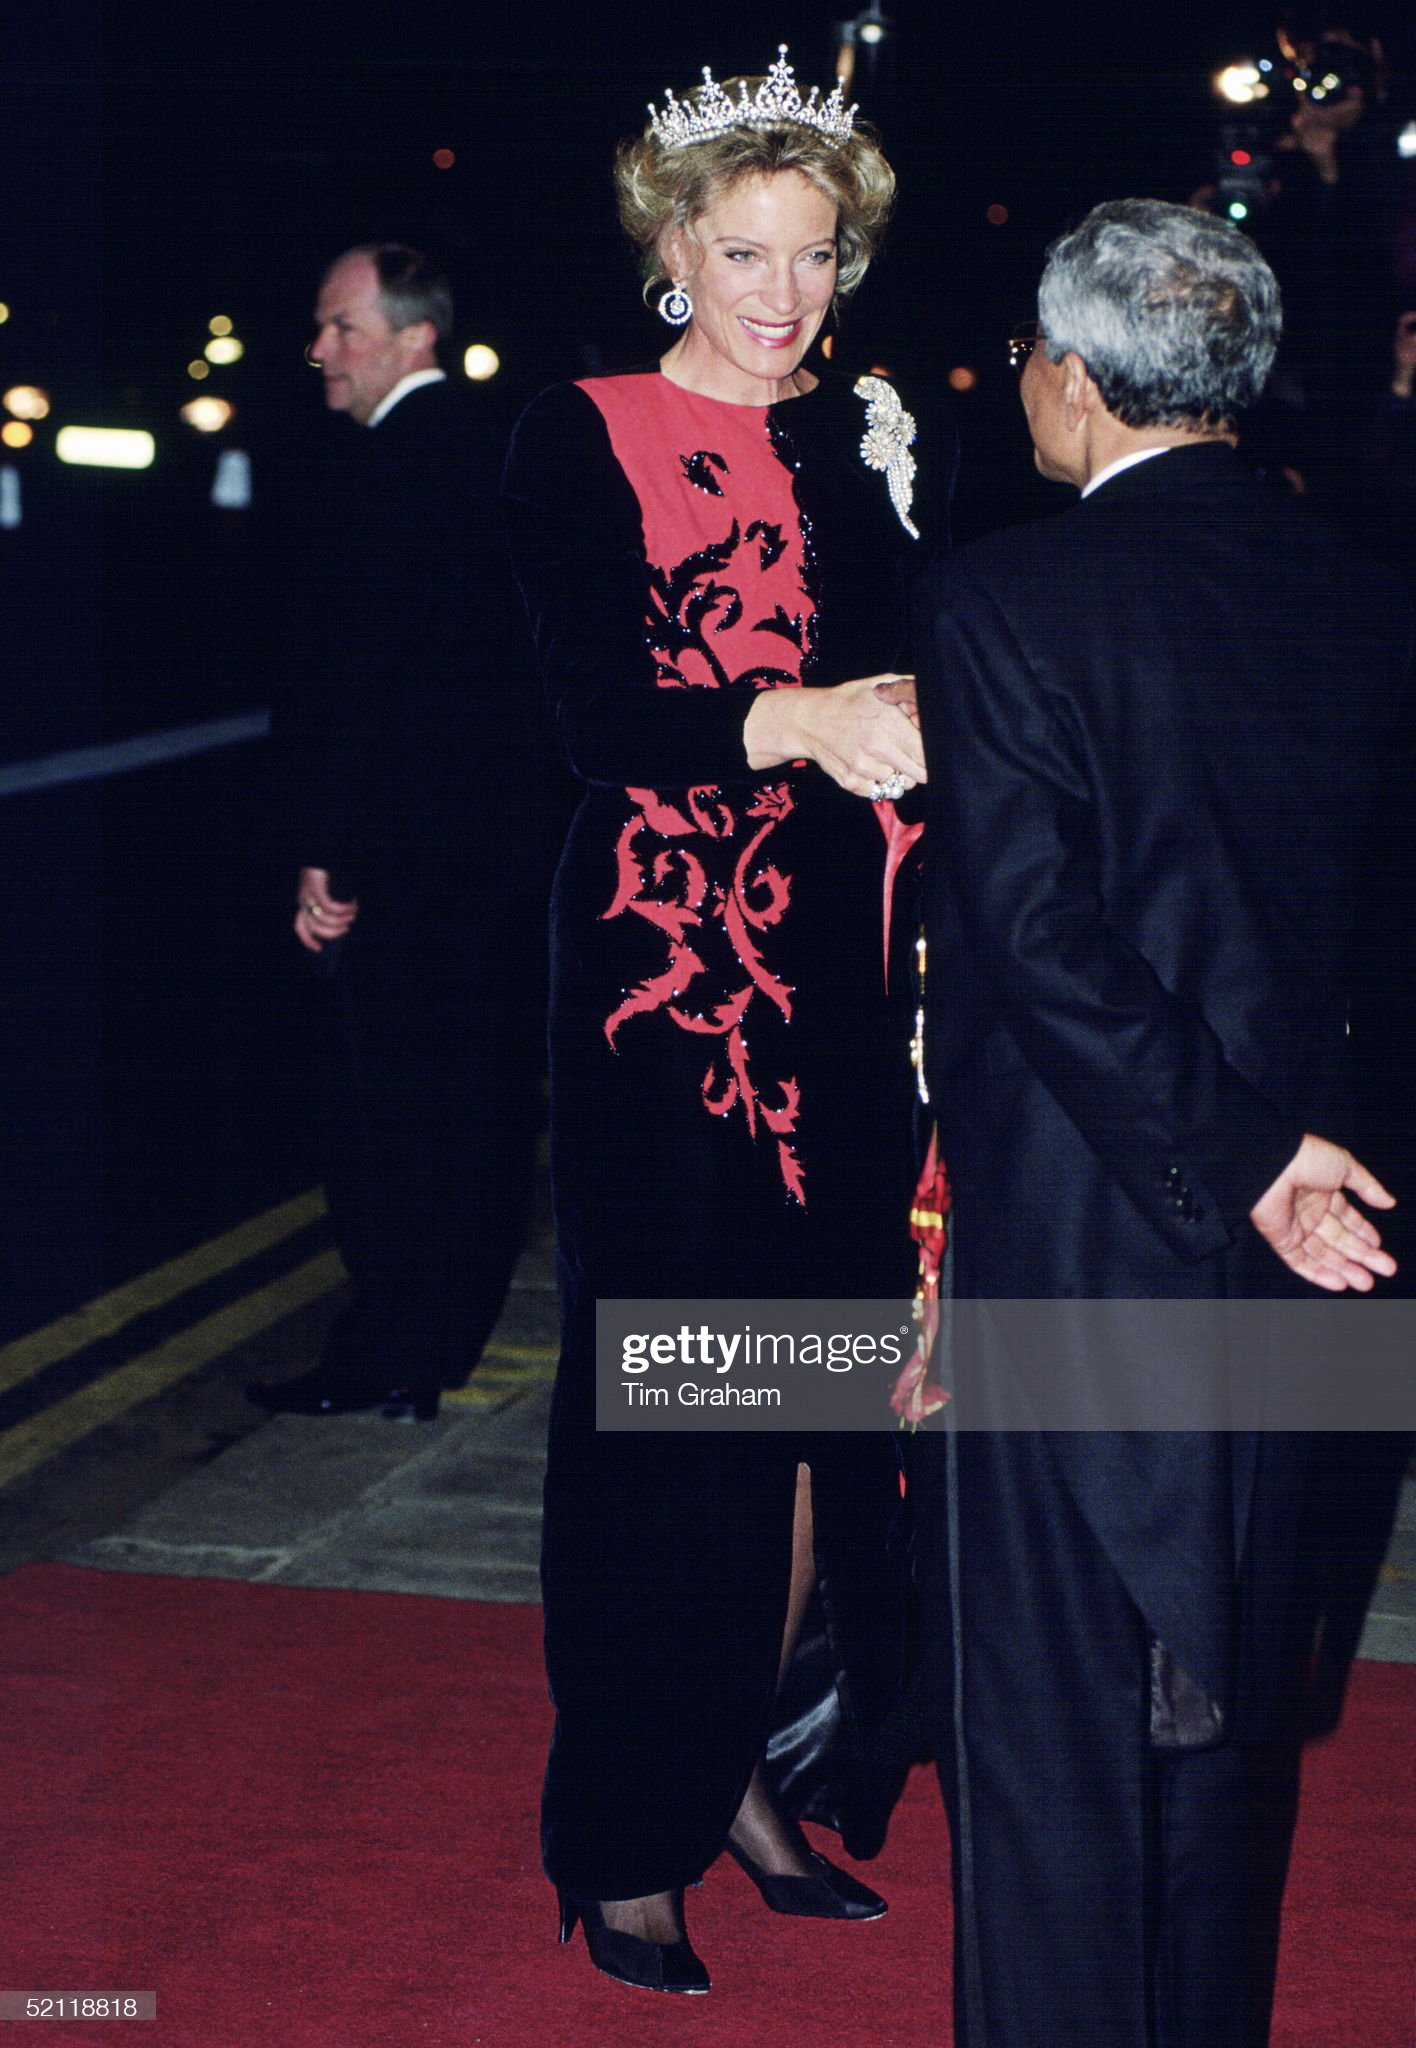 Princess Michael Of Kent Banquet : News Photo